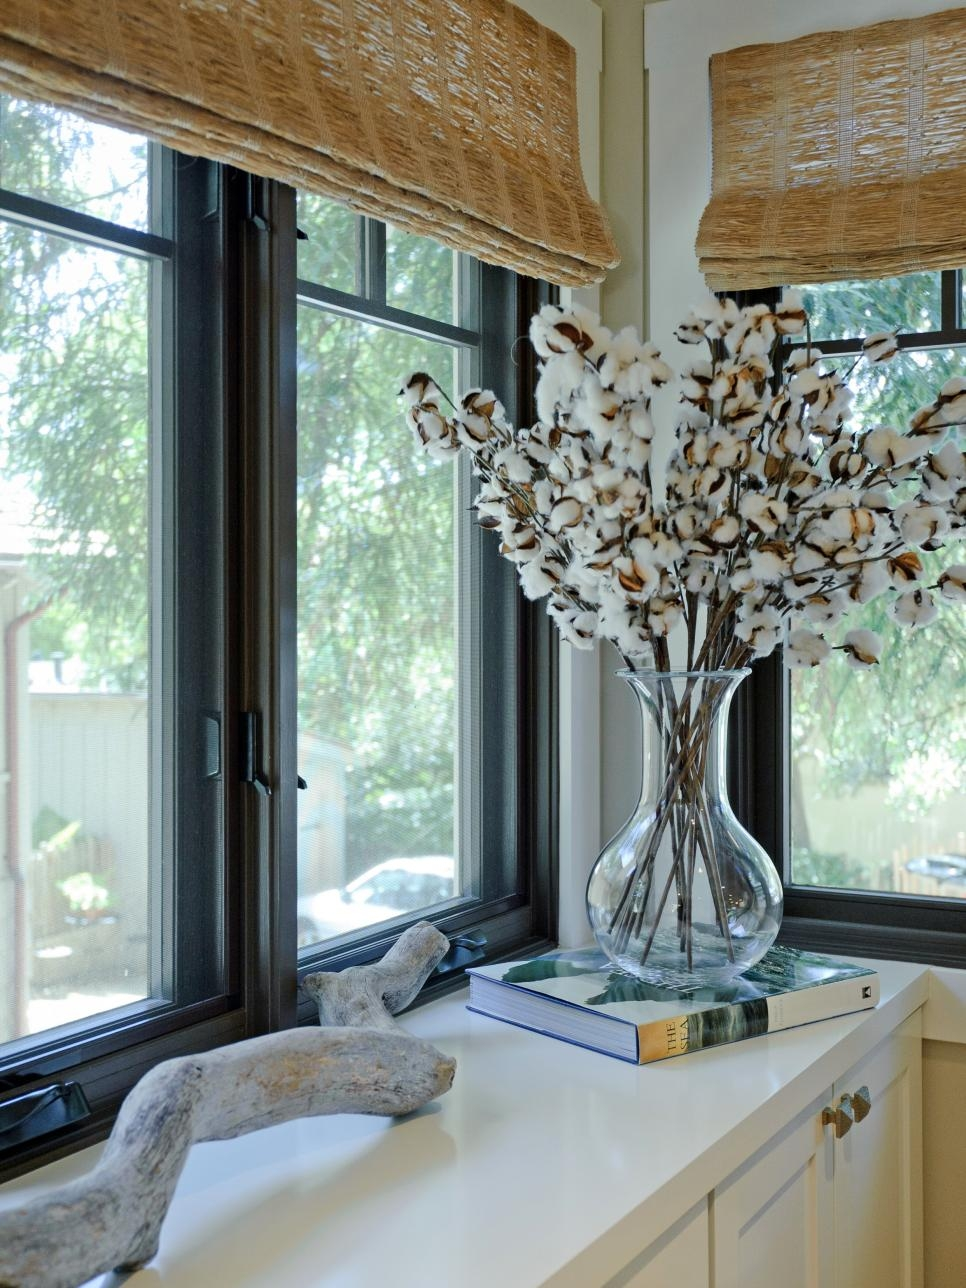 10 Top Window Treatment Trends Hgtv Intended For Kitchen Curtains And Blinds (Image 1 of 15)